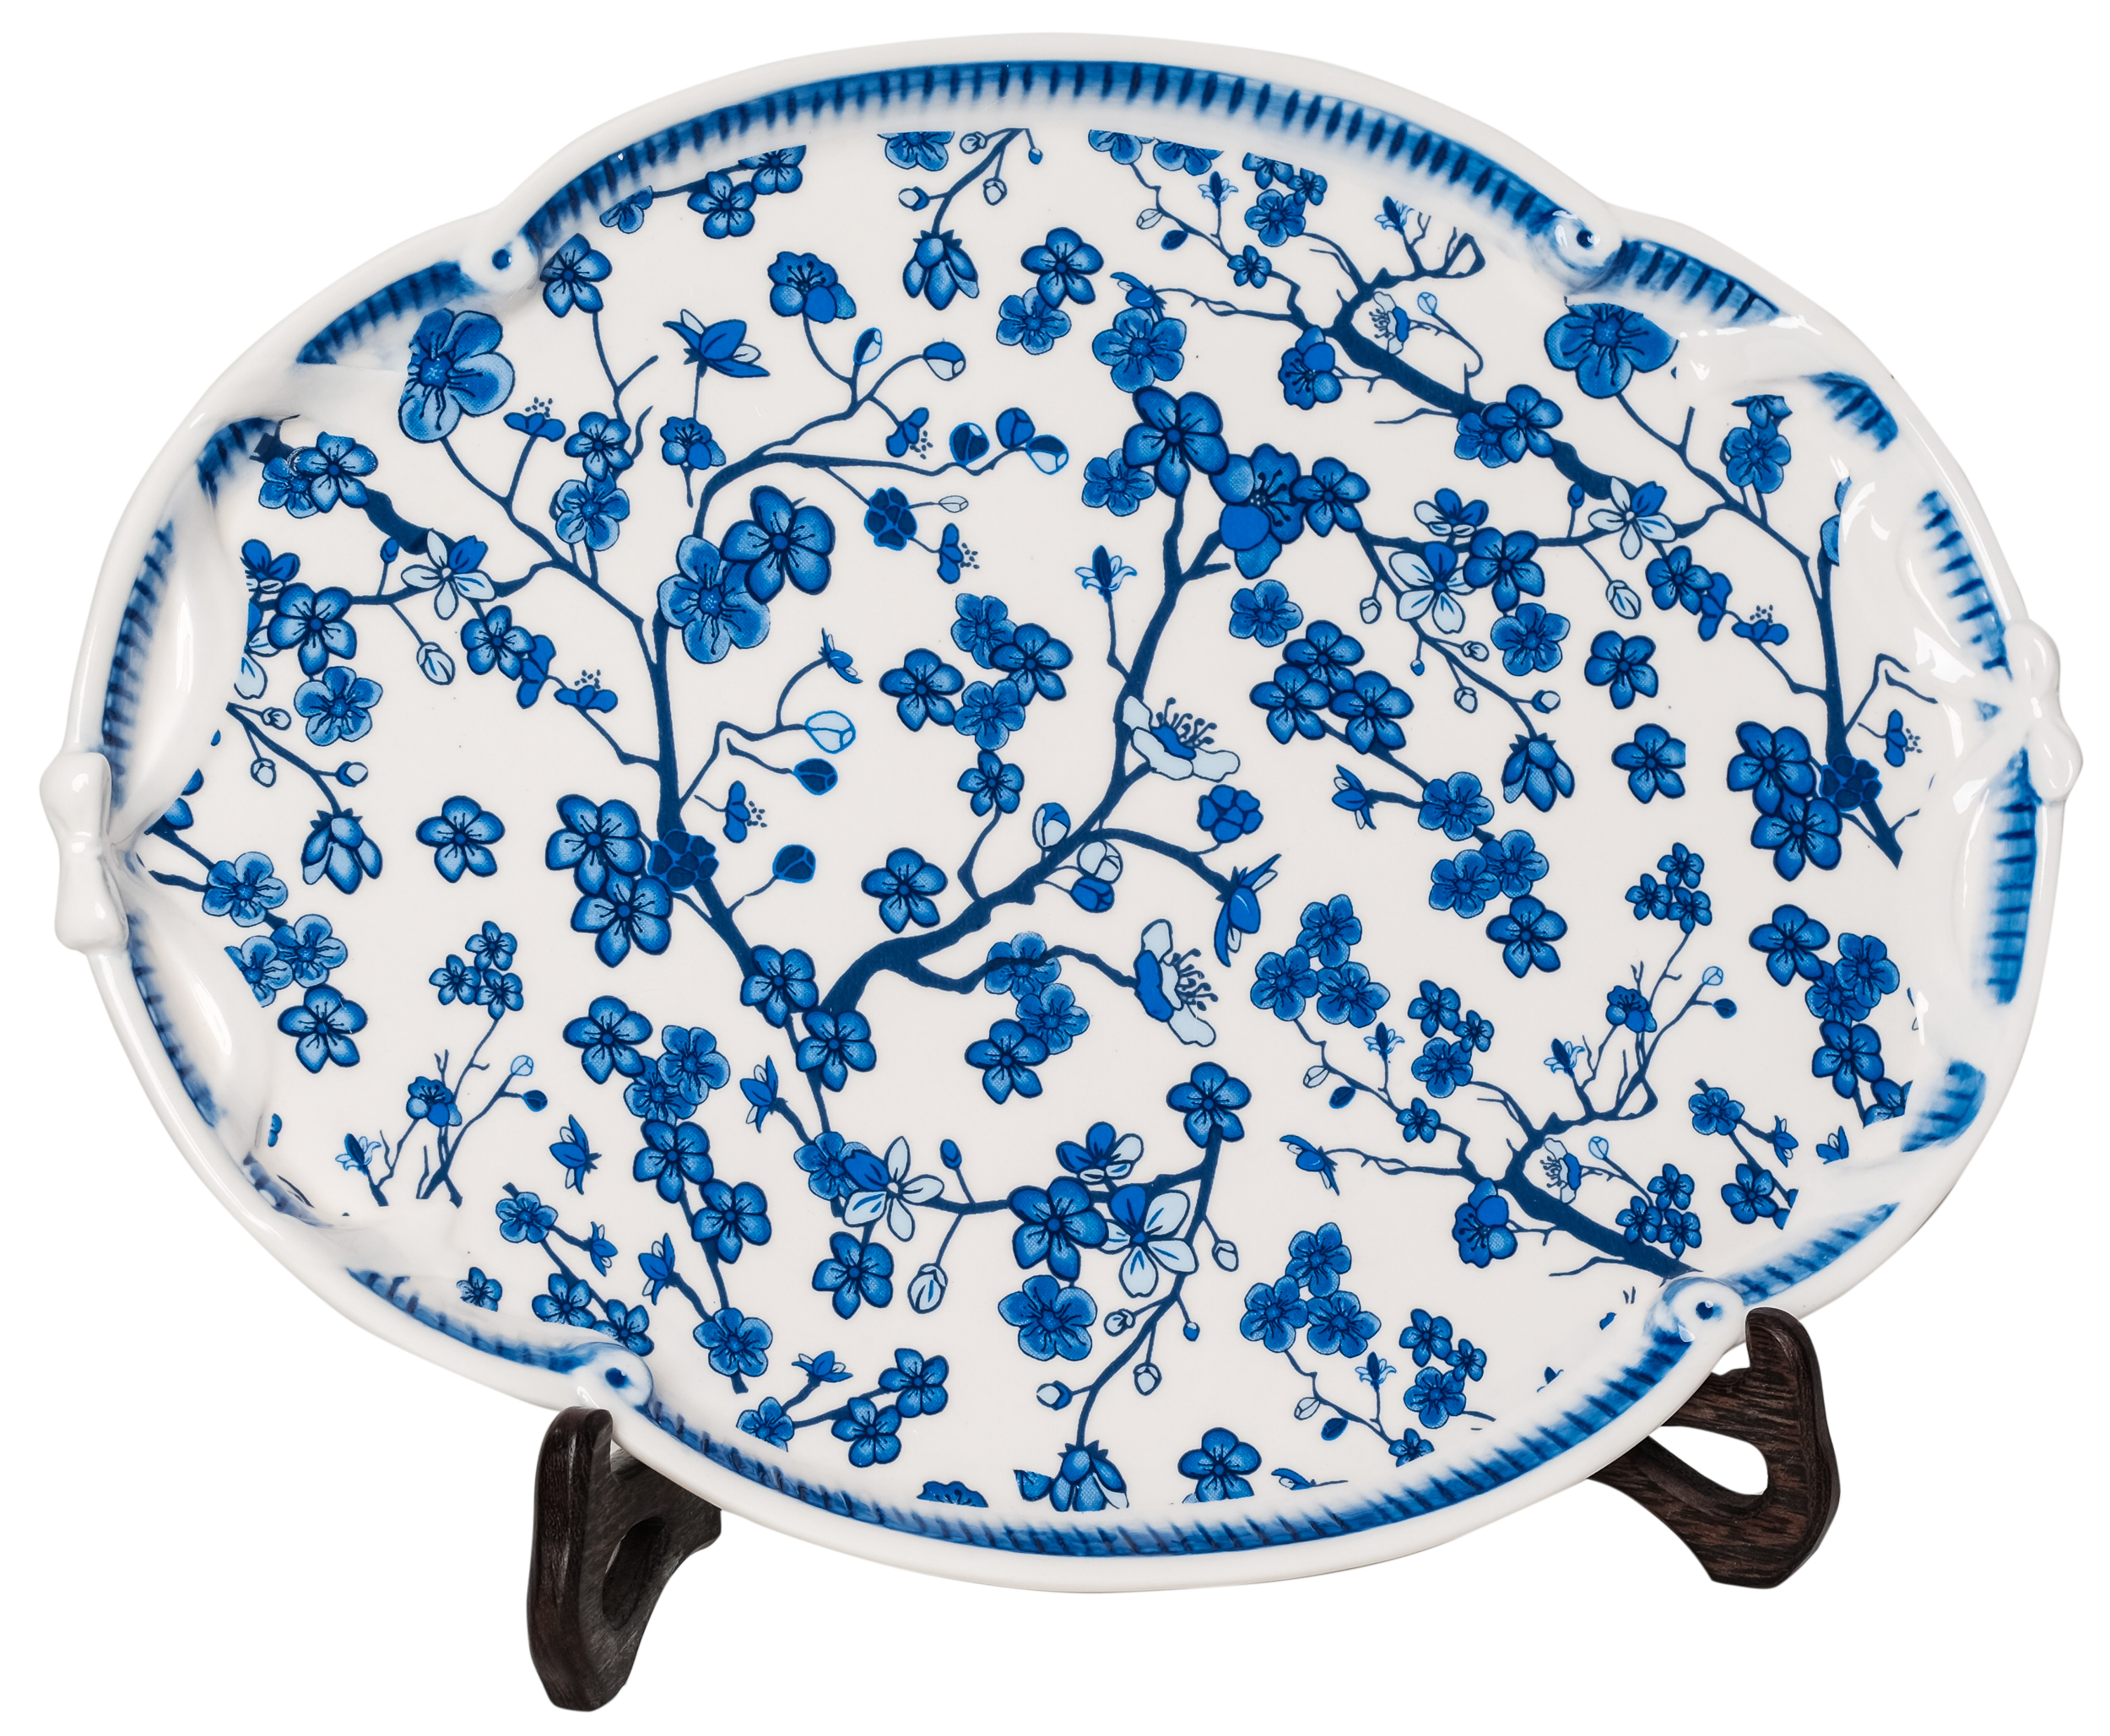 Incredible cherry blossom porcelain scalloped tray